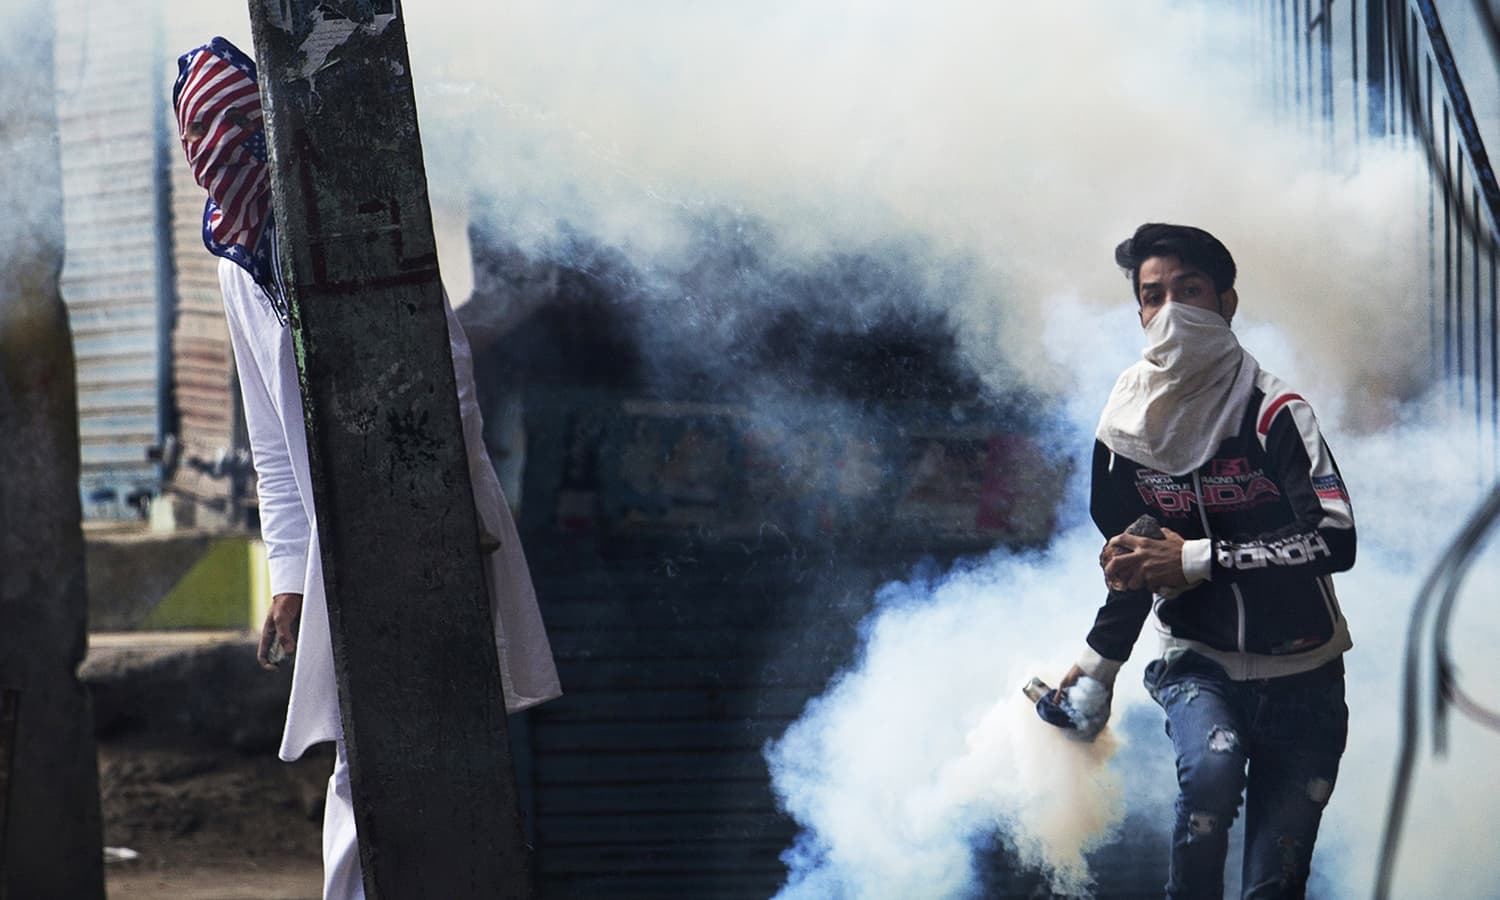 A Kashmiri protester prepares to throw back a tear gas canister at Indian security personnel as another takes cover behind an electric pole during a protest after Eid prayers in Srinagar, India-held Kashmir, Tuesday, Sept. 13, 2016. ─ AP